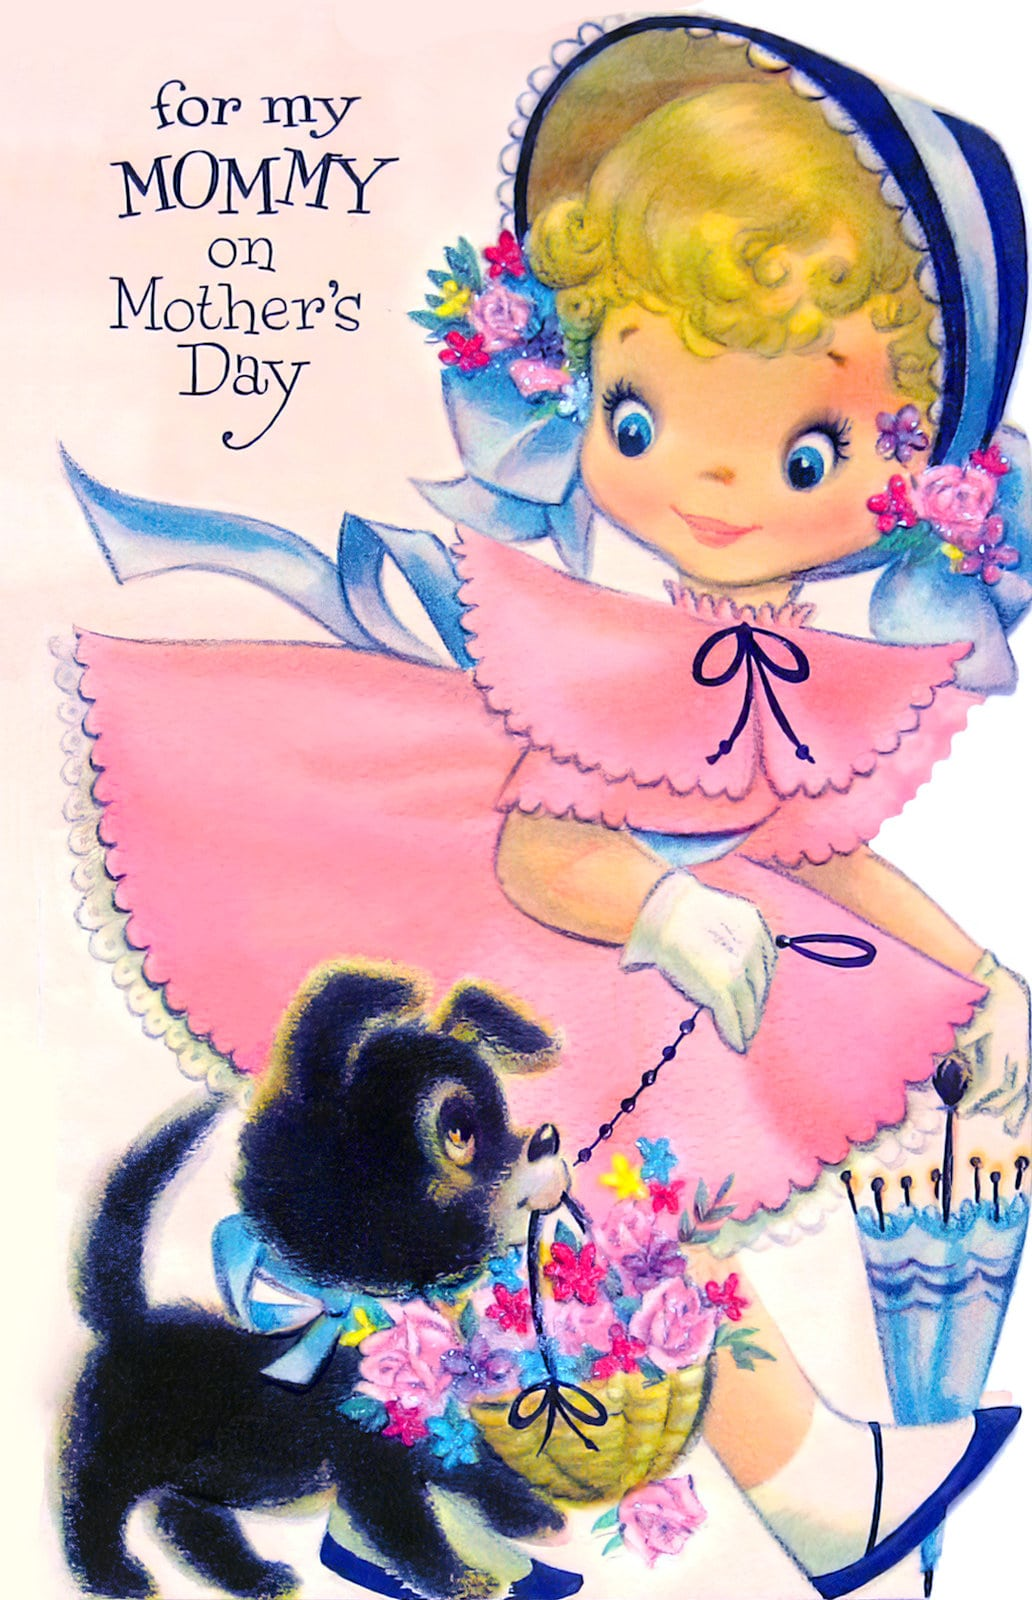 Vintage card - For my mommy on Mother's Day (1950s/1960s)